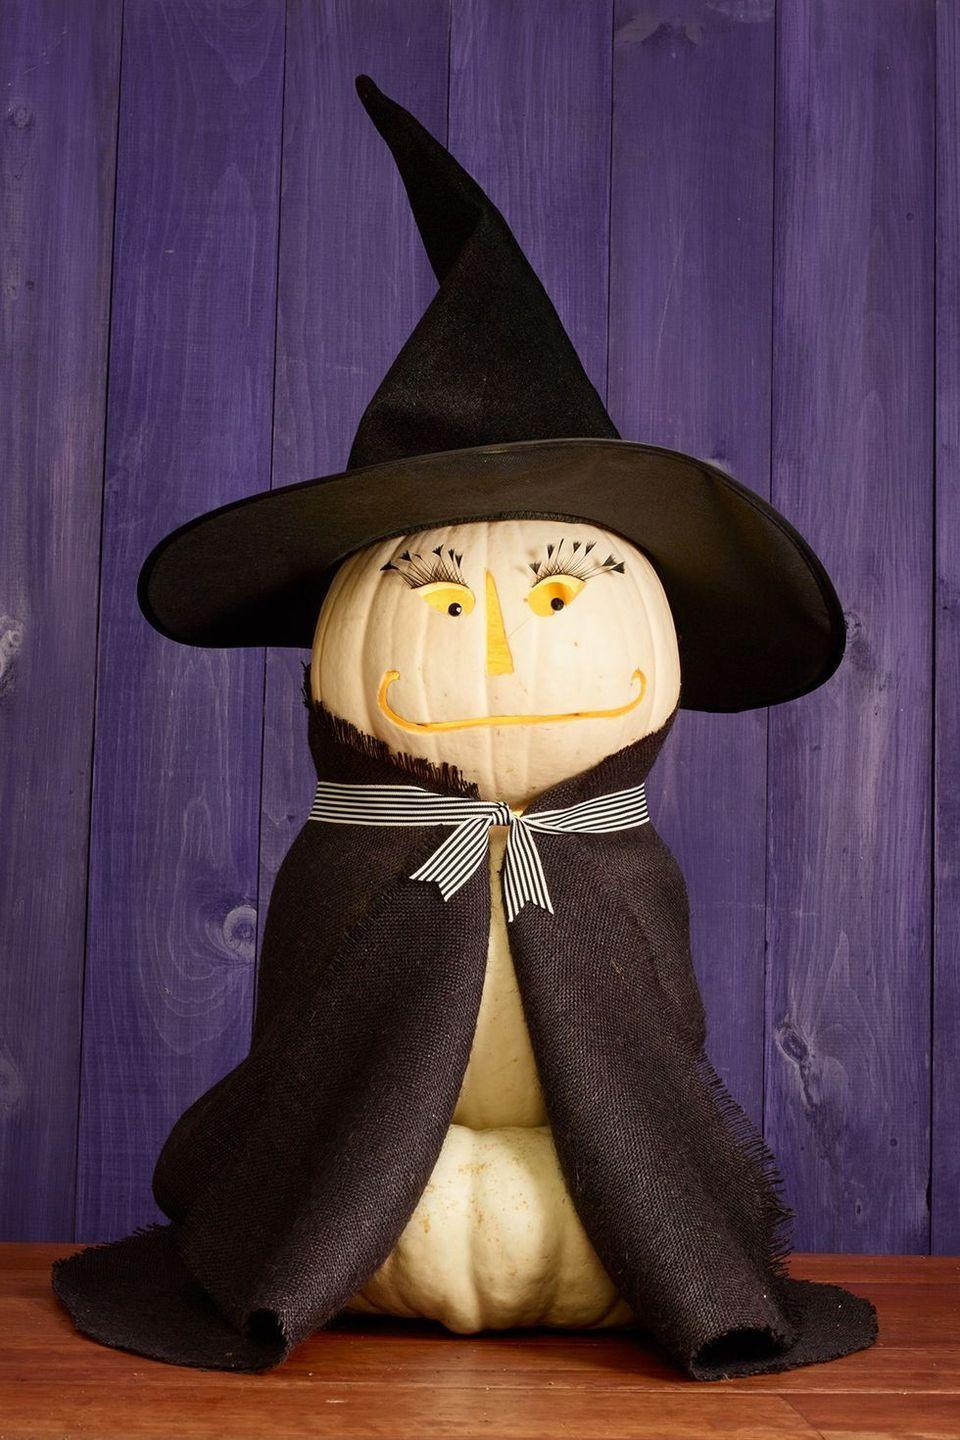 "<p>Sweet and friendly with lush eyelashes that'll make anyone jealous this witch pumpkin is ready to great trick-or treaters with a smile!</p><p><strong>Make the pumpkin: </strong>Stack three white pumpkins. Carve a friendly face in the top most pumpkin. Paint on eyelashes with black acrylic paint and use pushpins to create pupils. Wrap a piece of black felt around the ""neck"" and tie in place with ribbon. Top it all off with a witch hat.</p><p><a class=""link rapid-noclick-resp"" href=""https://www.amazon.com/Acrylic-Felt-Yard-Wide-Long/dp/B001P22TIS/ref=sr_1_3?tag=syn-yahoo-20&ascsubtag=%5Bartid%7C10050.g.279%5Bsrc%7Cyahoo-us"" rel=""nofollow noopener"" target=""_blank"" data-ylk=""slk:SHOP BLACK FELT"">SHOP BLACK FELT</a></p>"